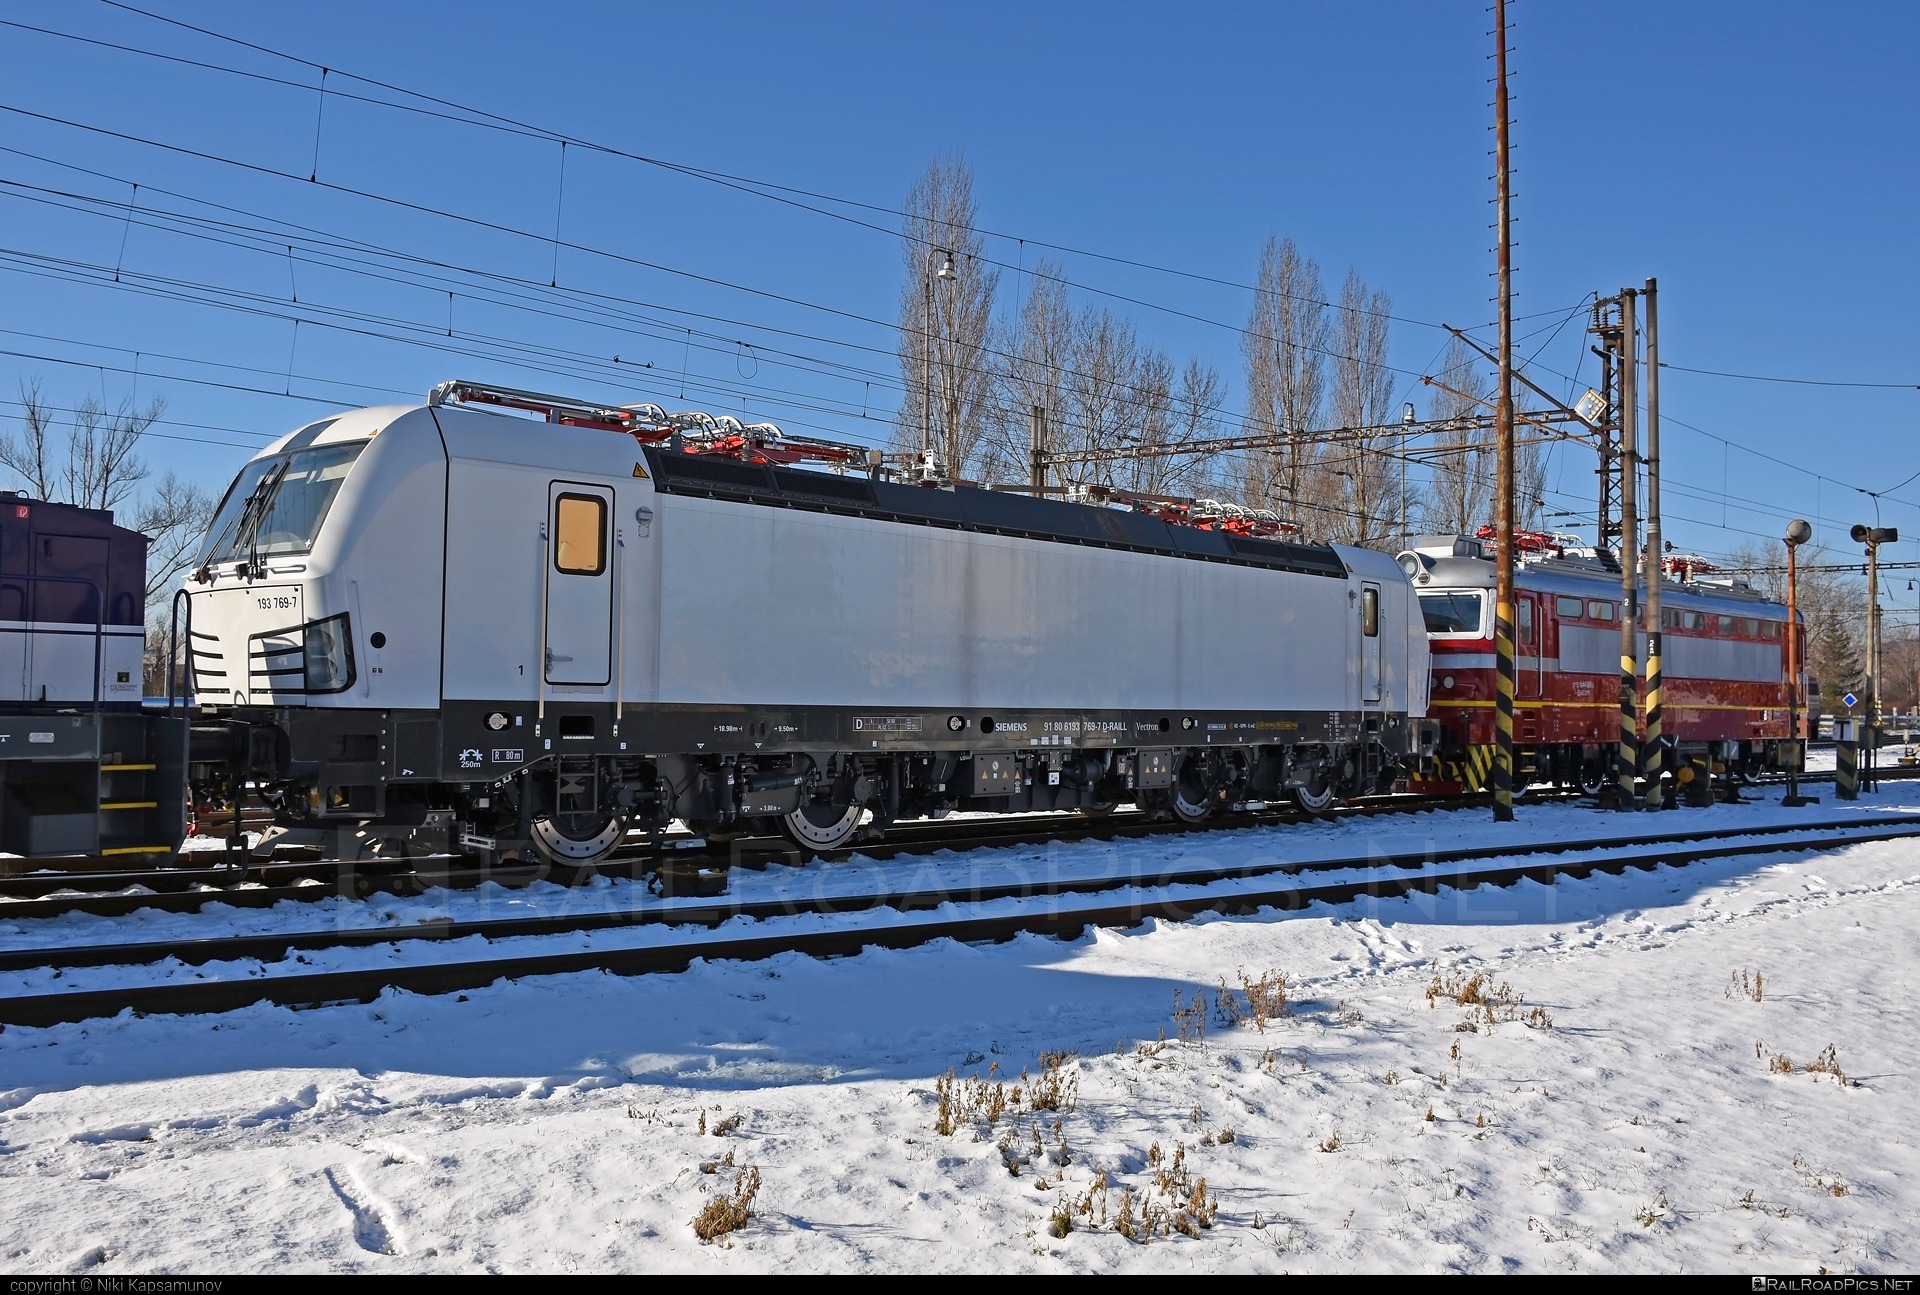 Siemens Vectron MS - 193 769-7 operated by Unknown #RollingStockLease #RollingStockLeaseSro #raill #siemens #siemensvectron #siemensvectronms #vectron #vectronms